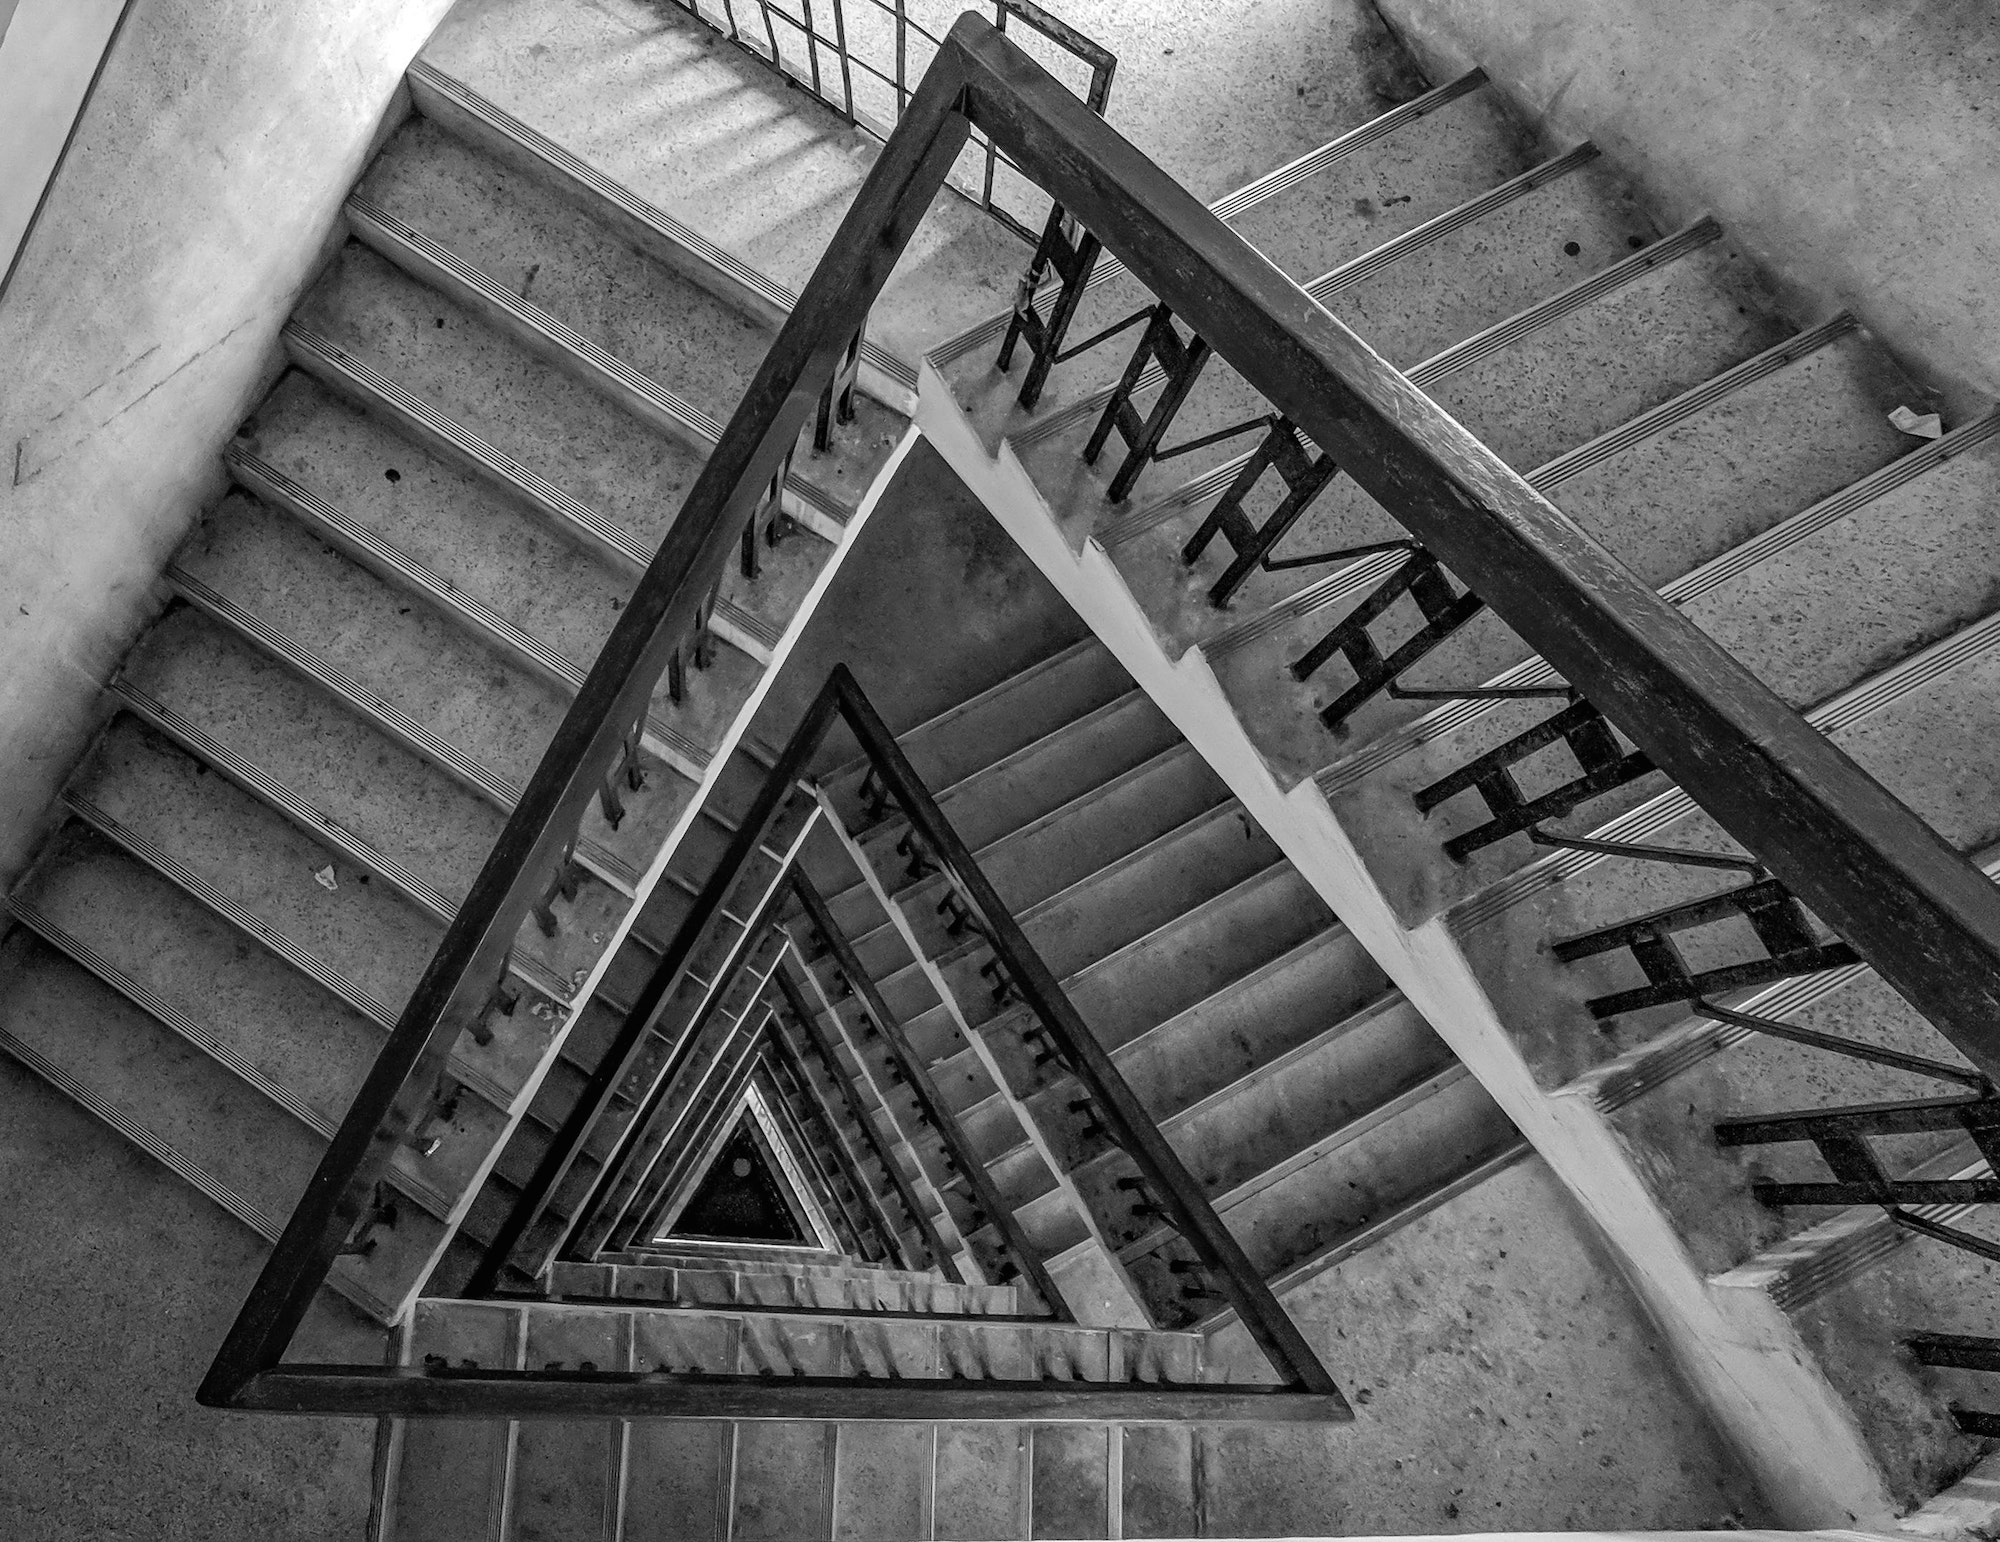 multi-floor-stairs-grayscale-photo-1044302